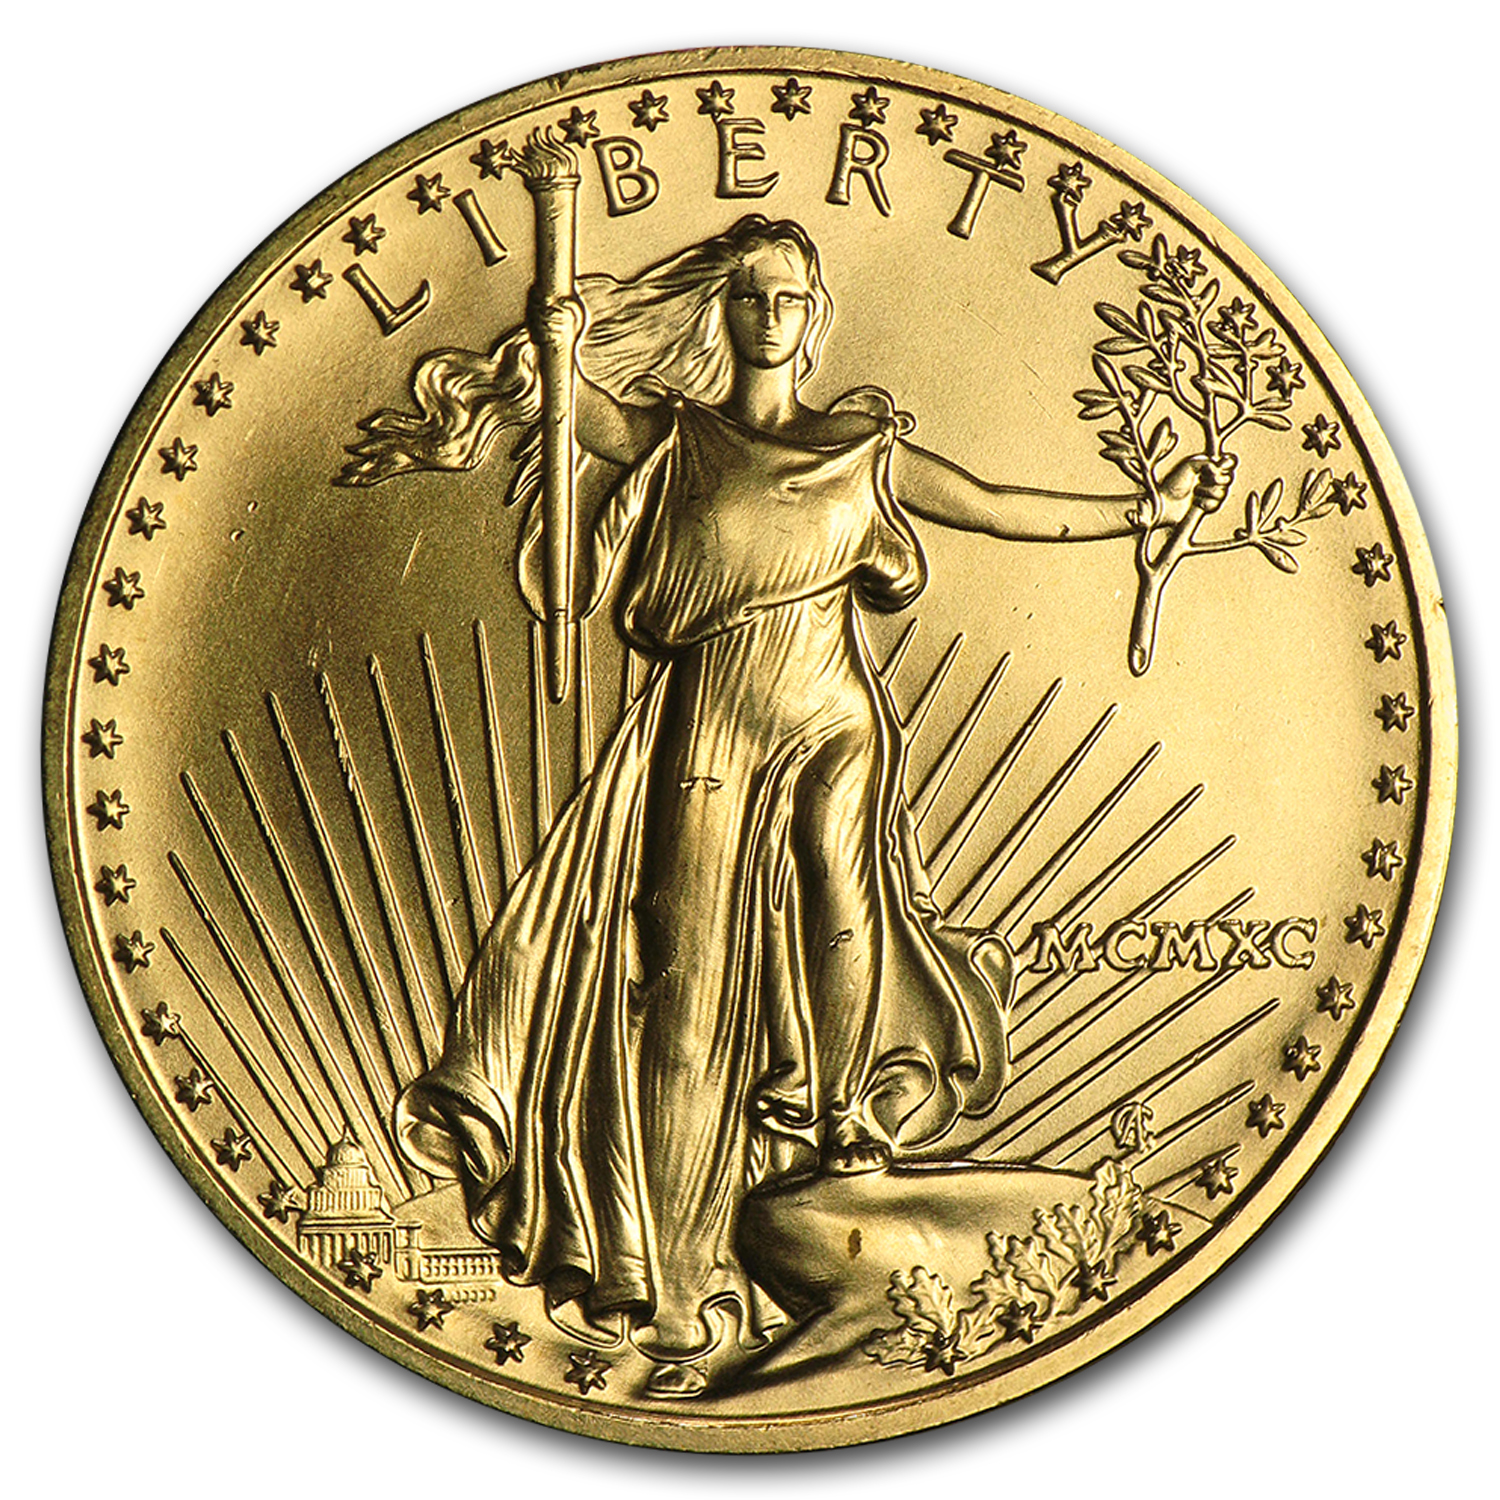 1990 MCMXC 1/2 oz Gold American Eagle (BU)